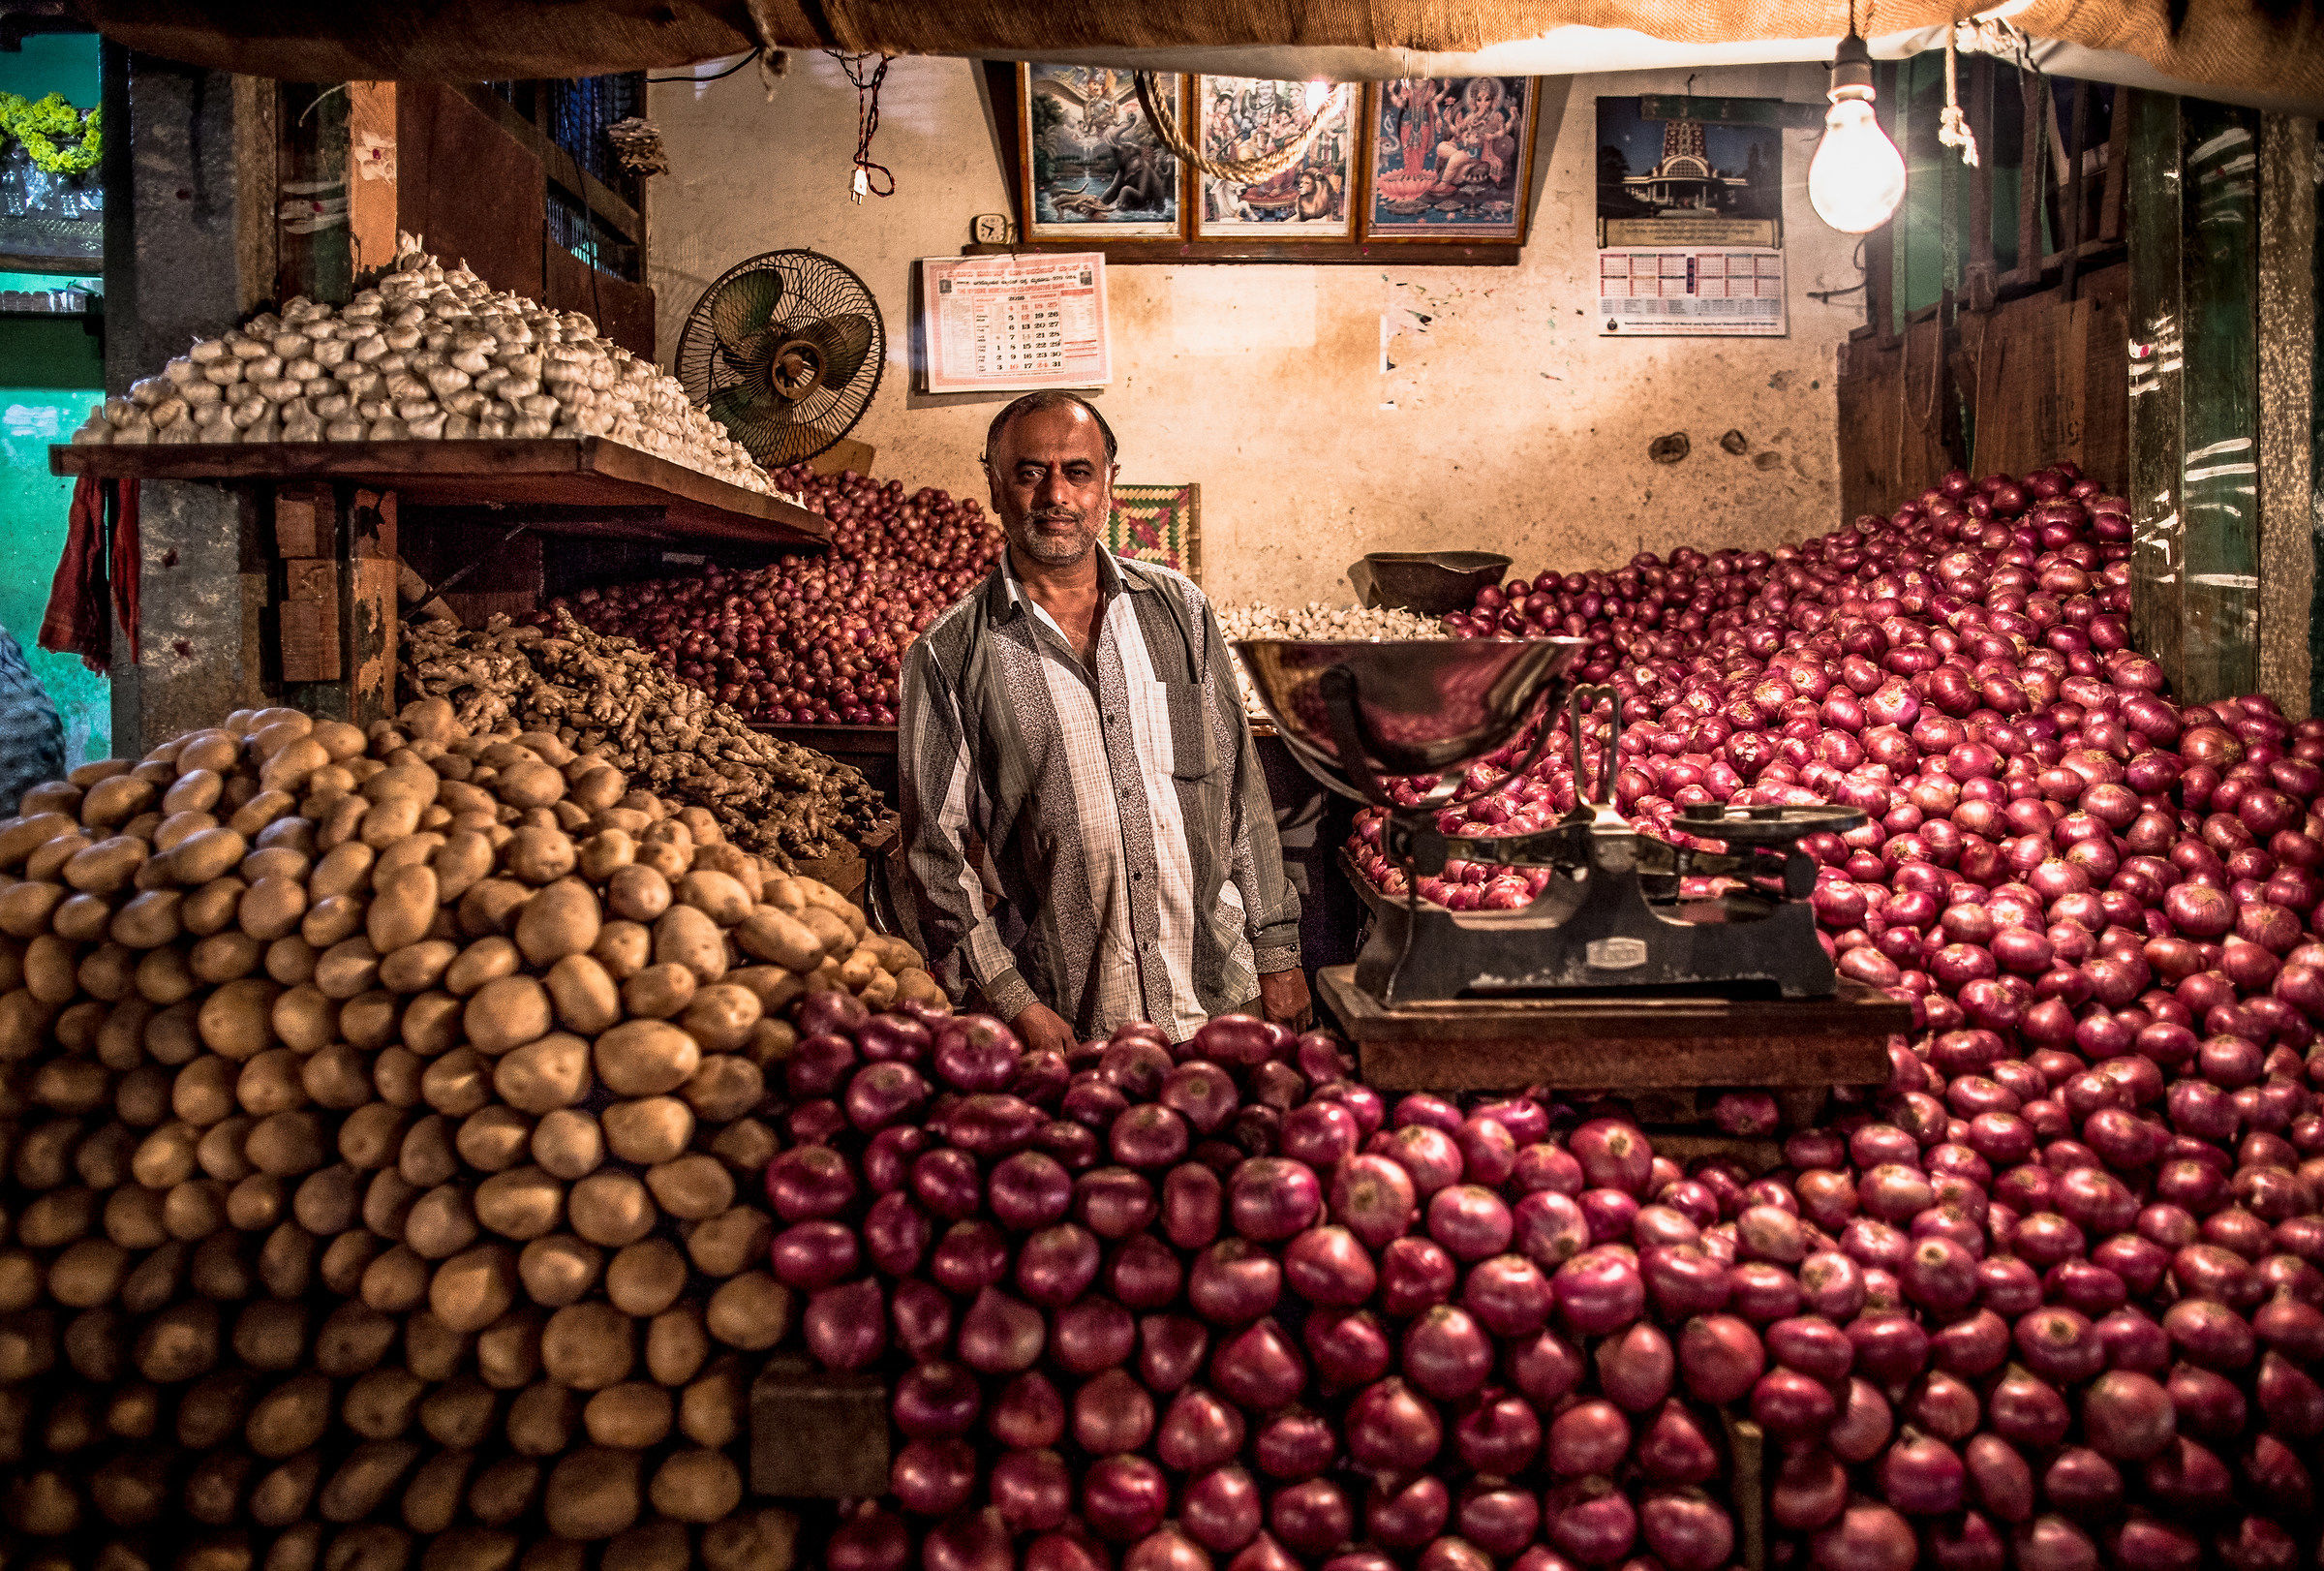 The man of onions...